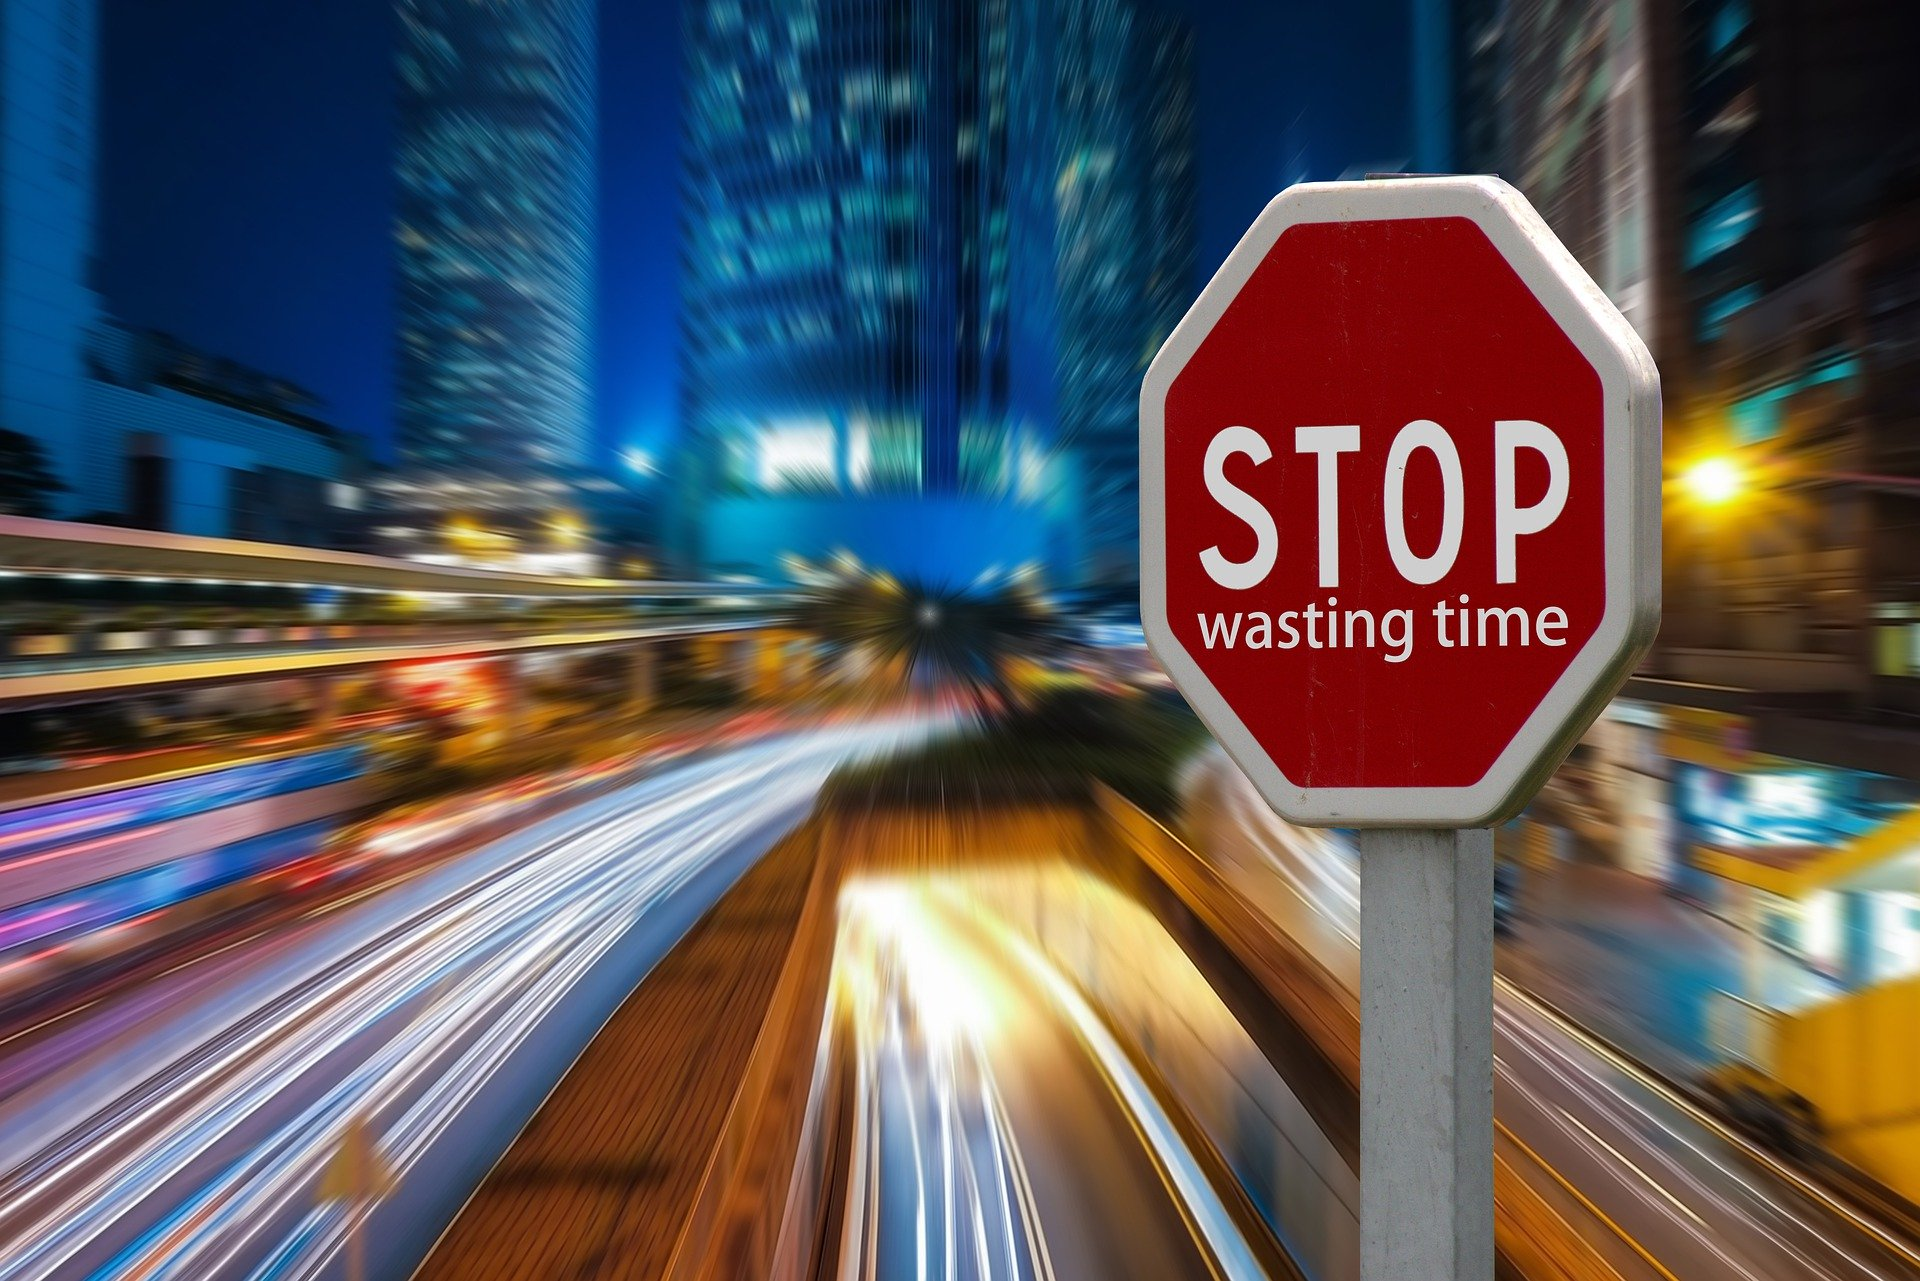 How To De-clutter Your Life. Part 4 – 5 Top Time Wasters & How To Control Them